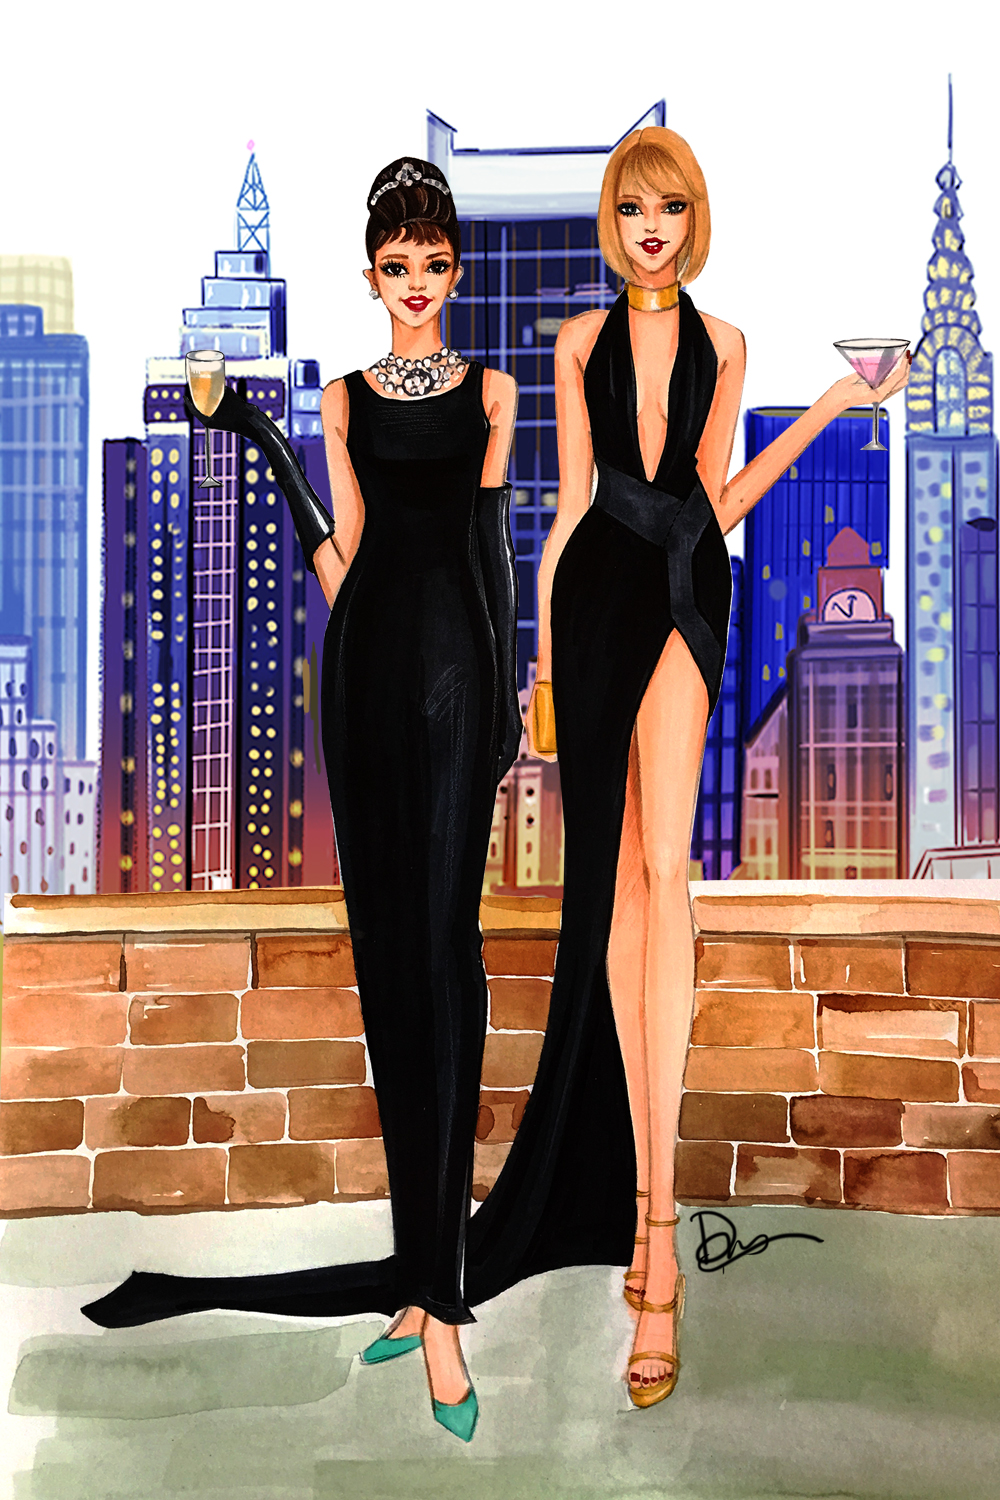 Audery-Hepburn-and-Taylor-Swift-fashion-illustration-by-Rongrong-DeVoe.jpg